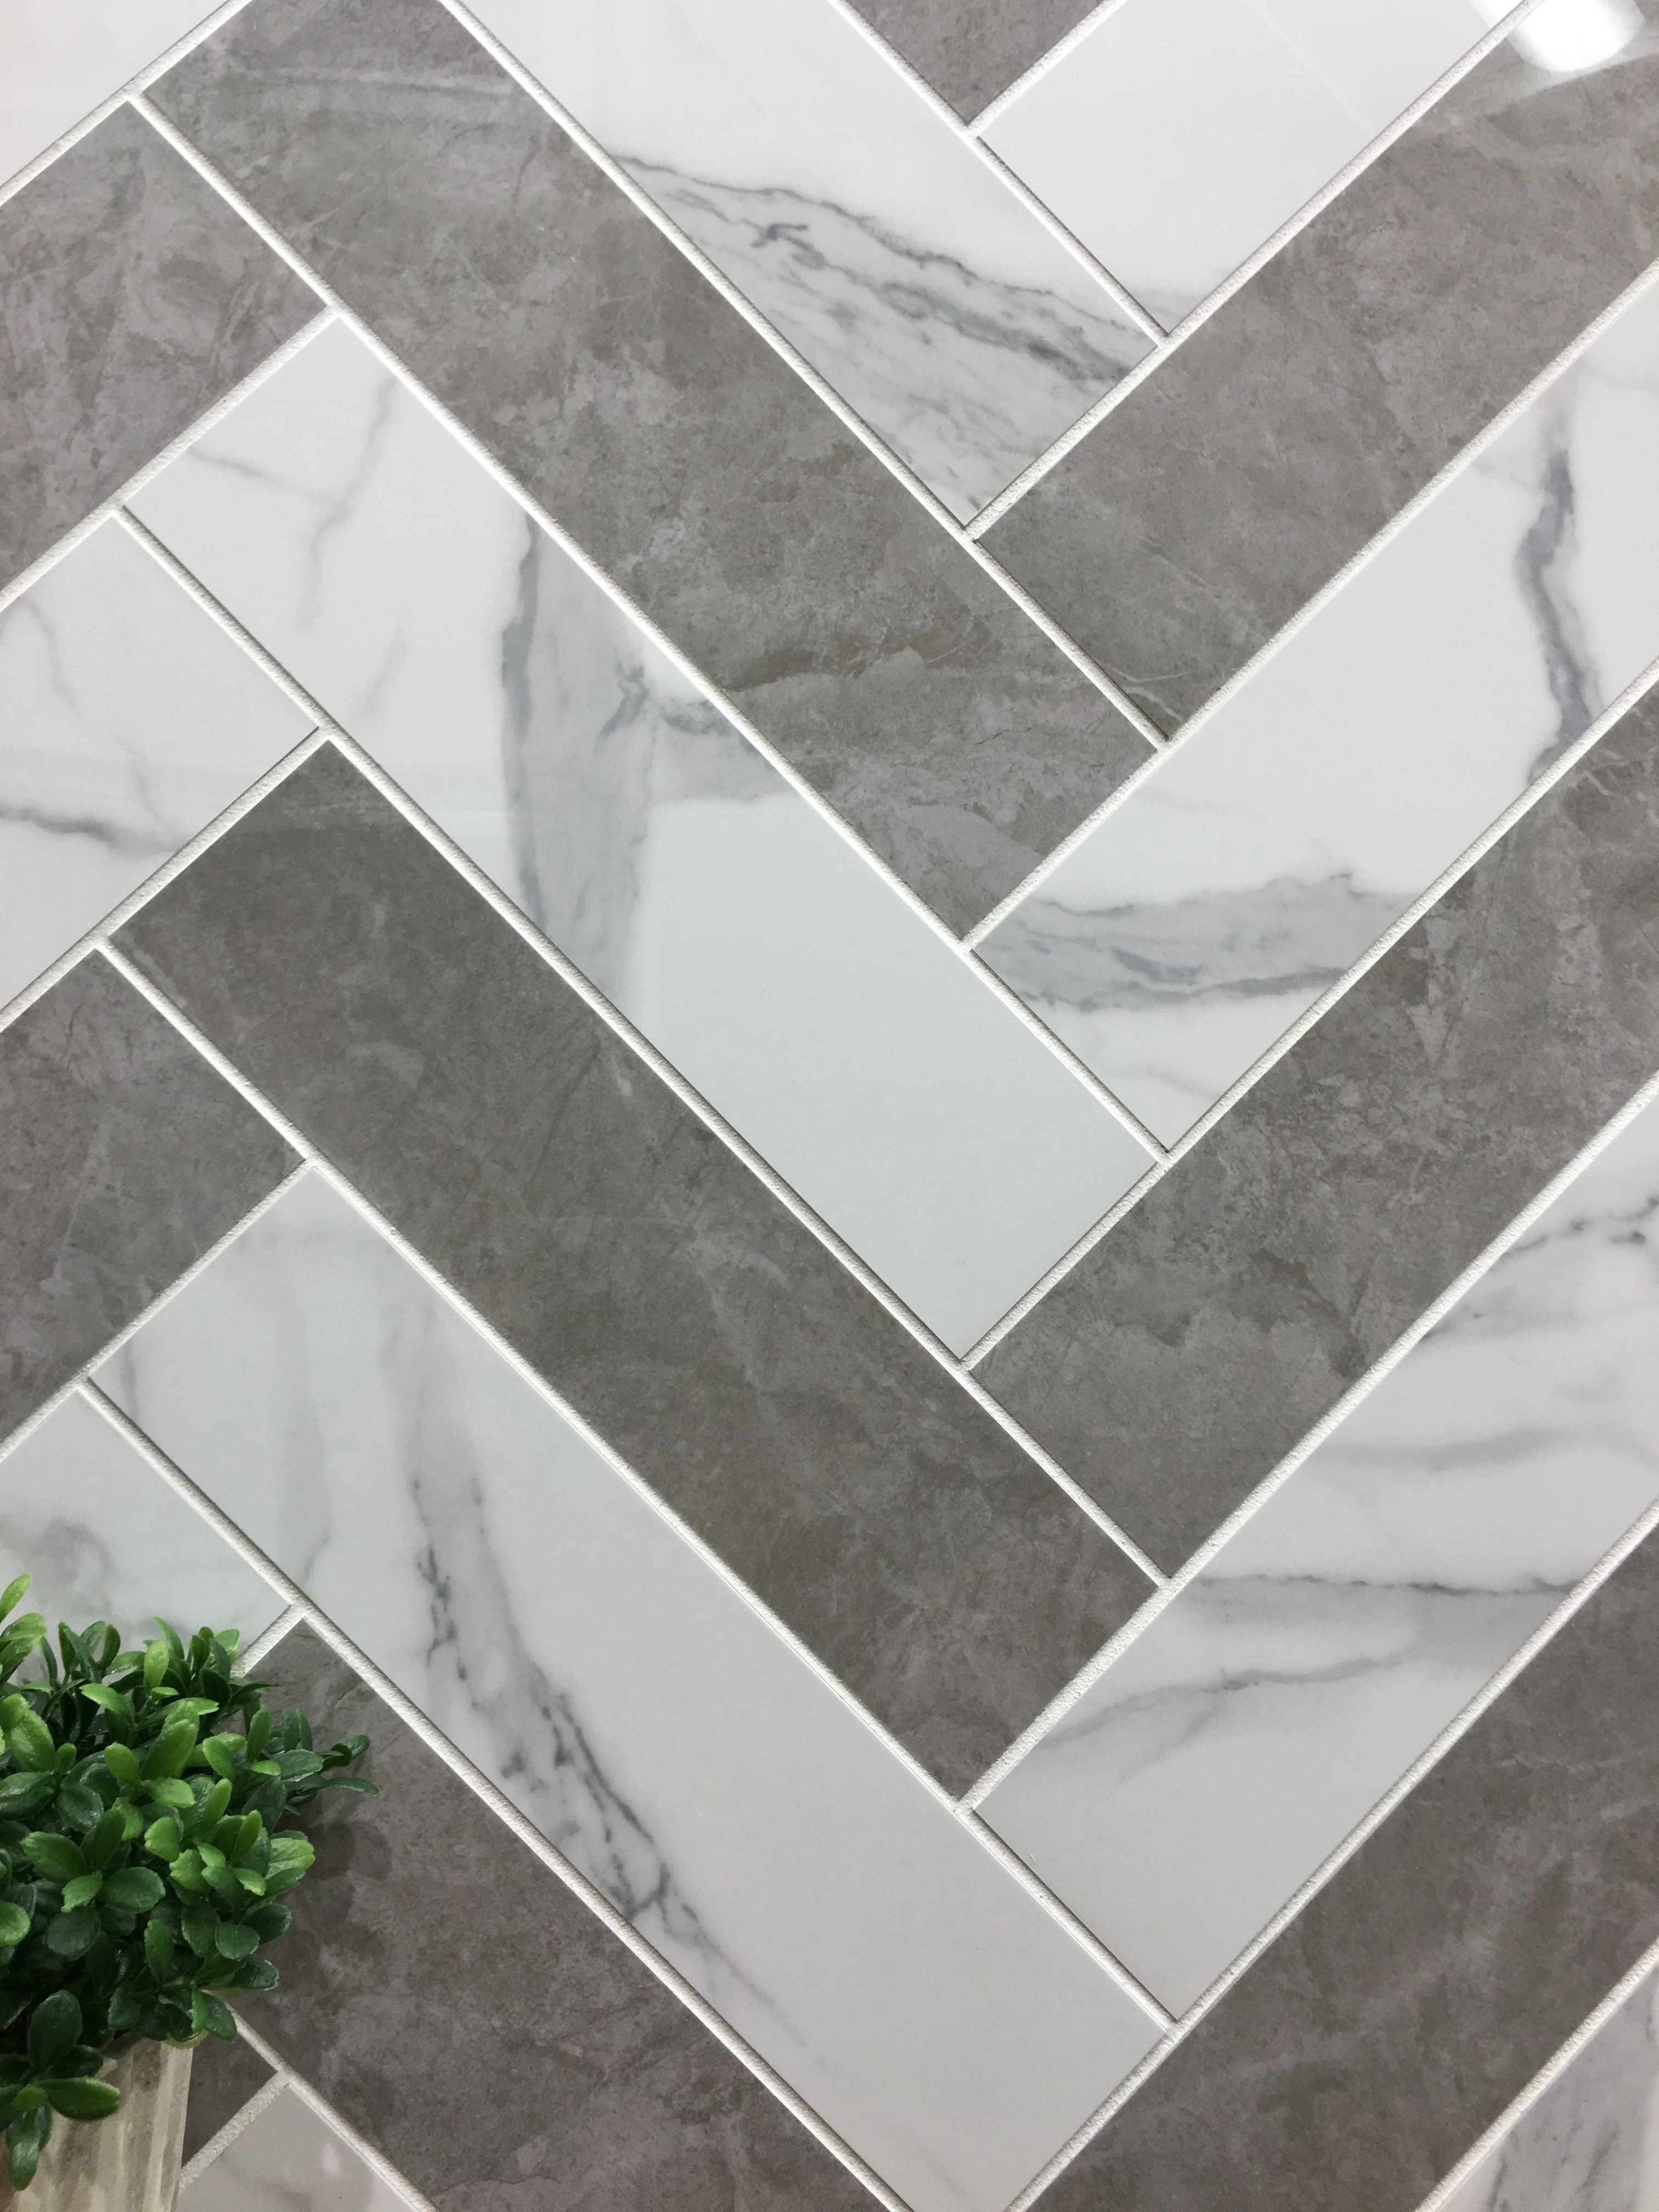 Pin by arizona tile on perfectly porcelain pinterest chevron themar porcelain tiles series from italy natural stone including marble and is available in several styles and colors at arizona tile locations dailygadgetfo Image collections